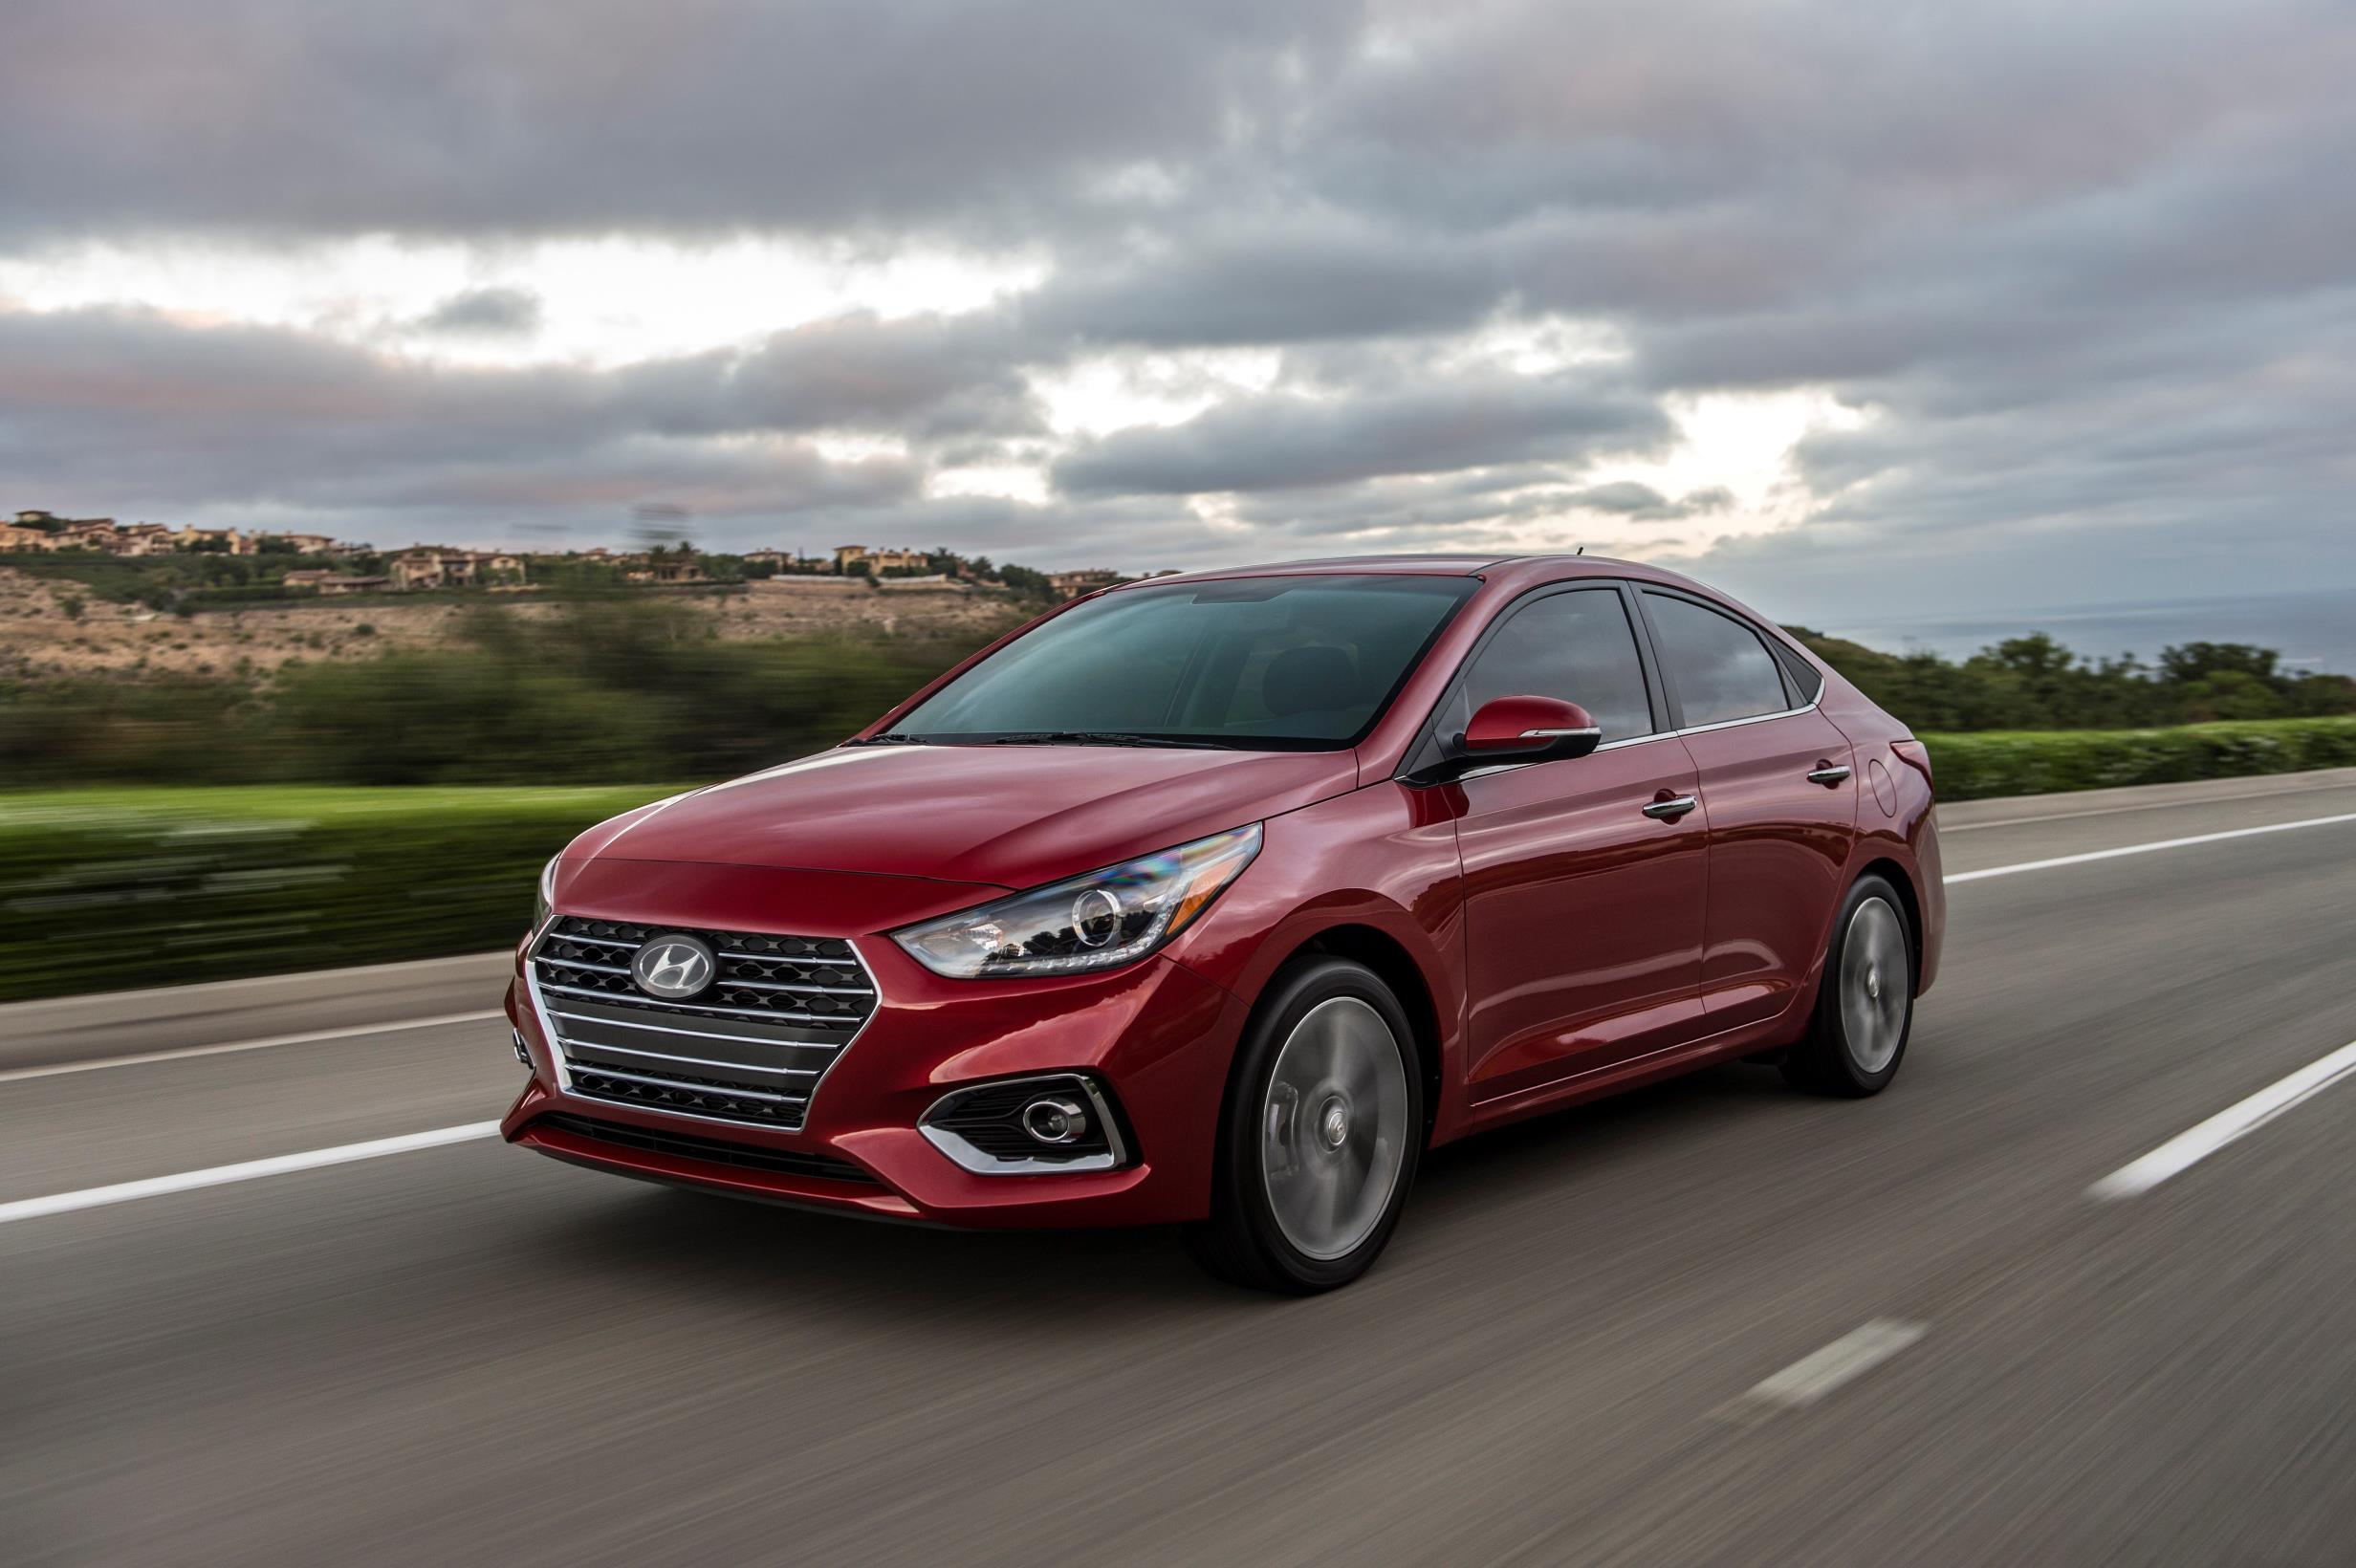 Hyundai Accent, one of Hyundai's top selling vehicles in calendar year 2017